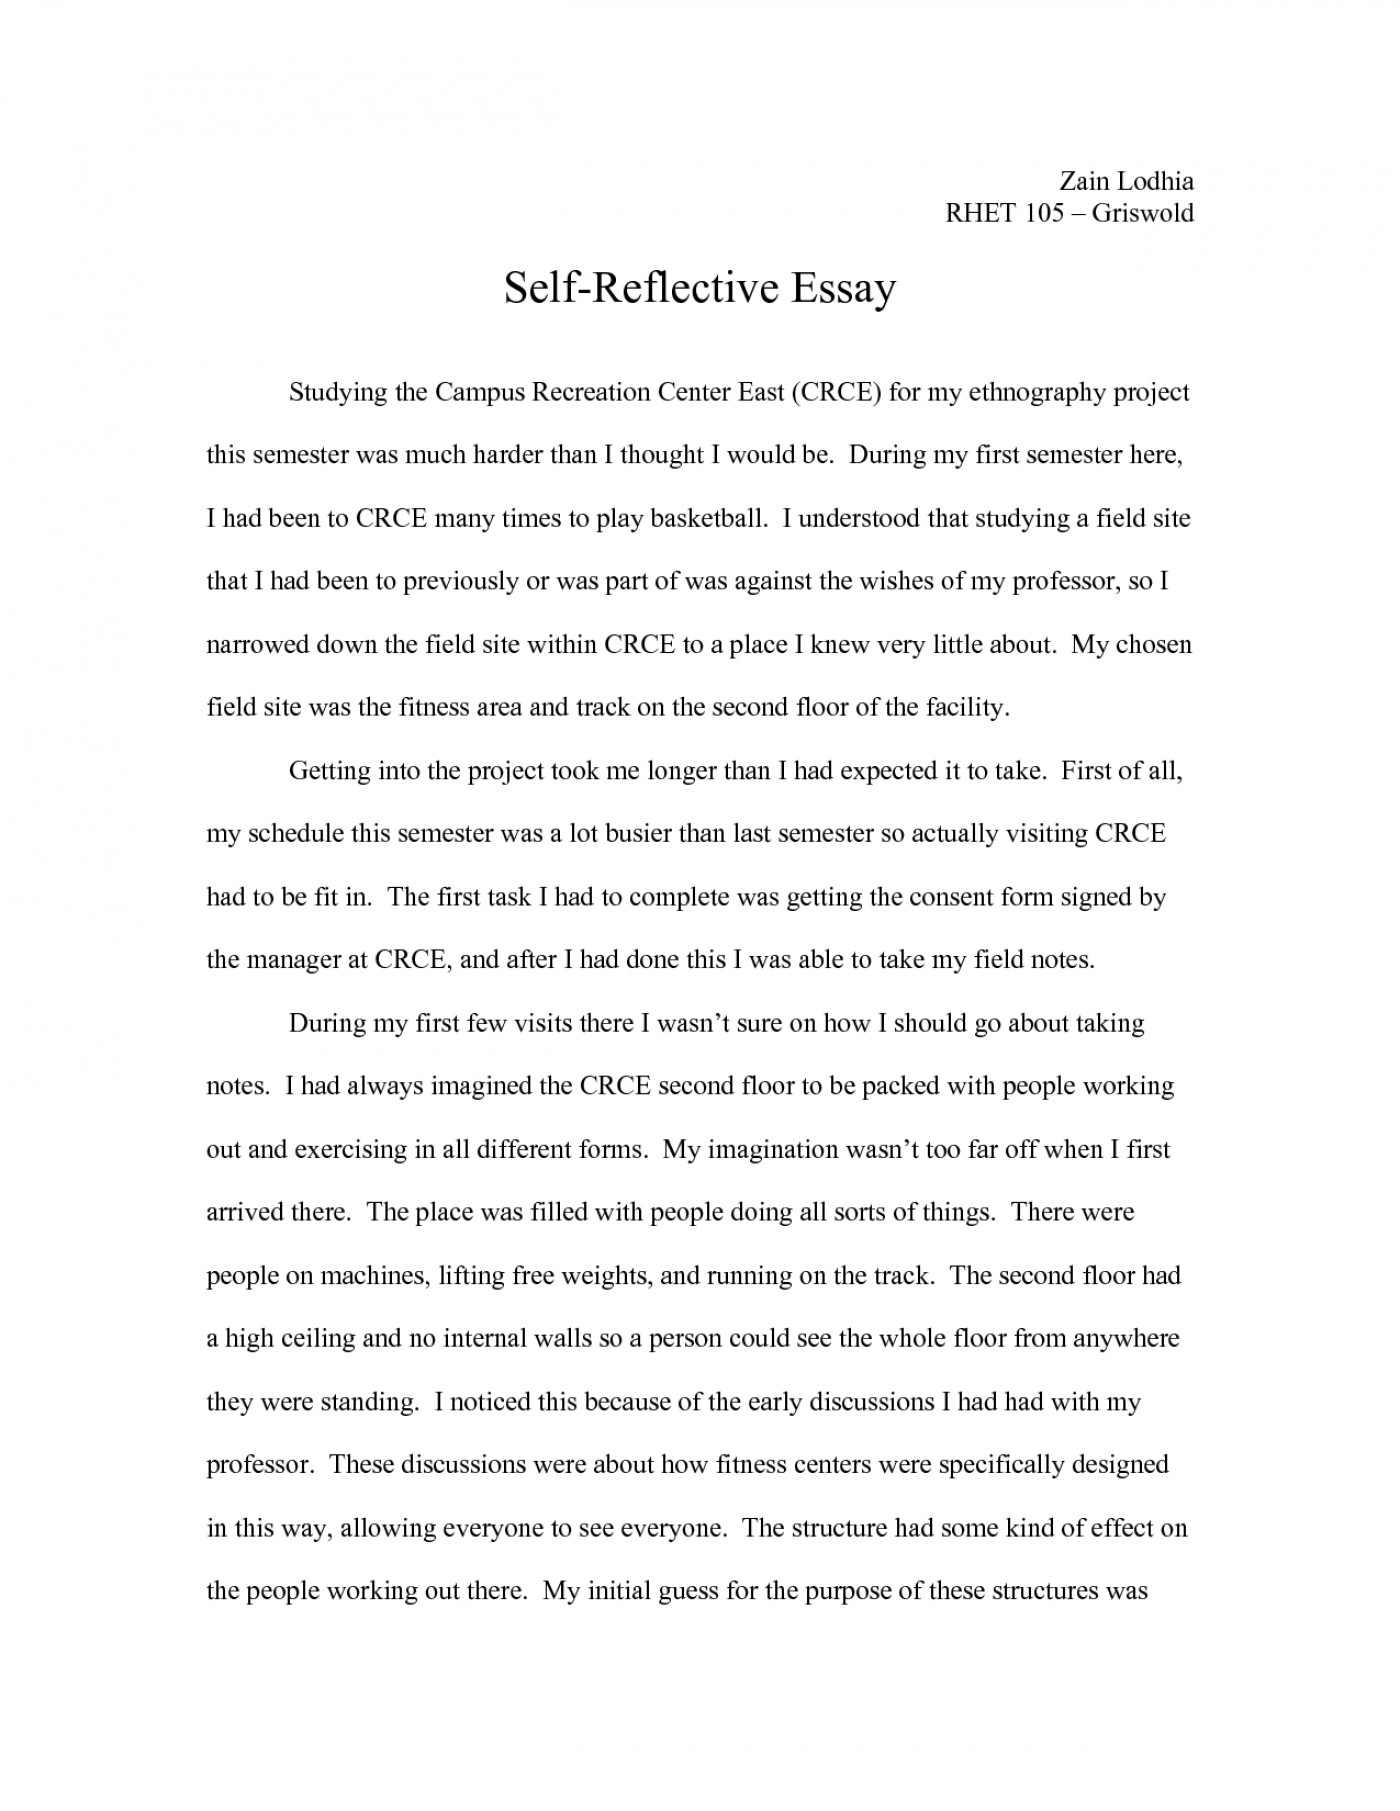 003 Reflective Essay Format Qal0pwnf46 Phenomenal Example Reflection Paper Apa 1400